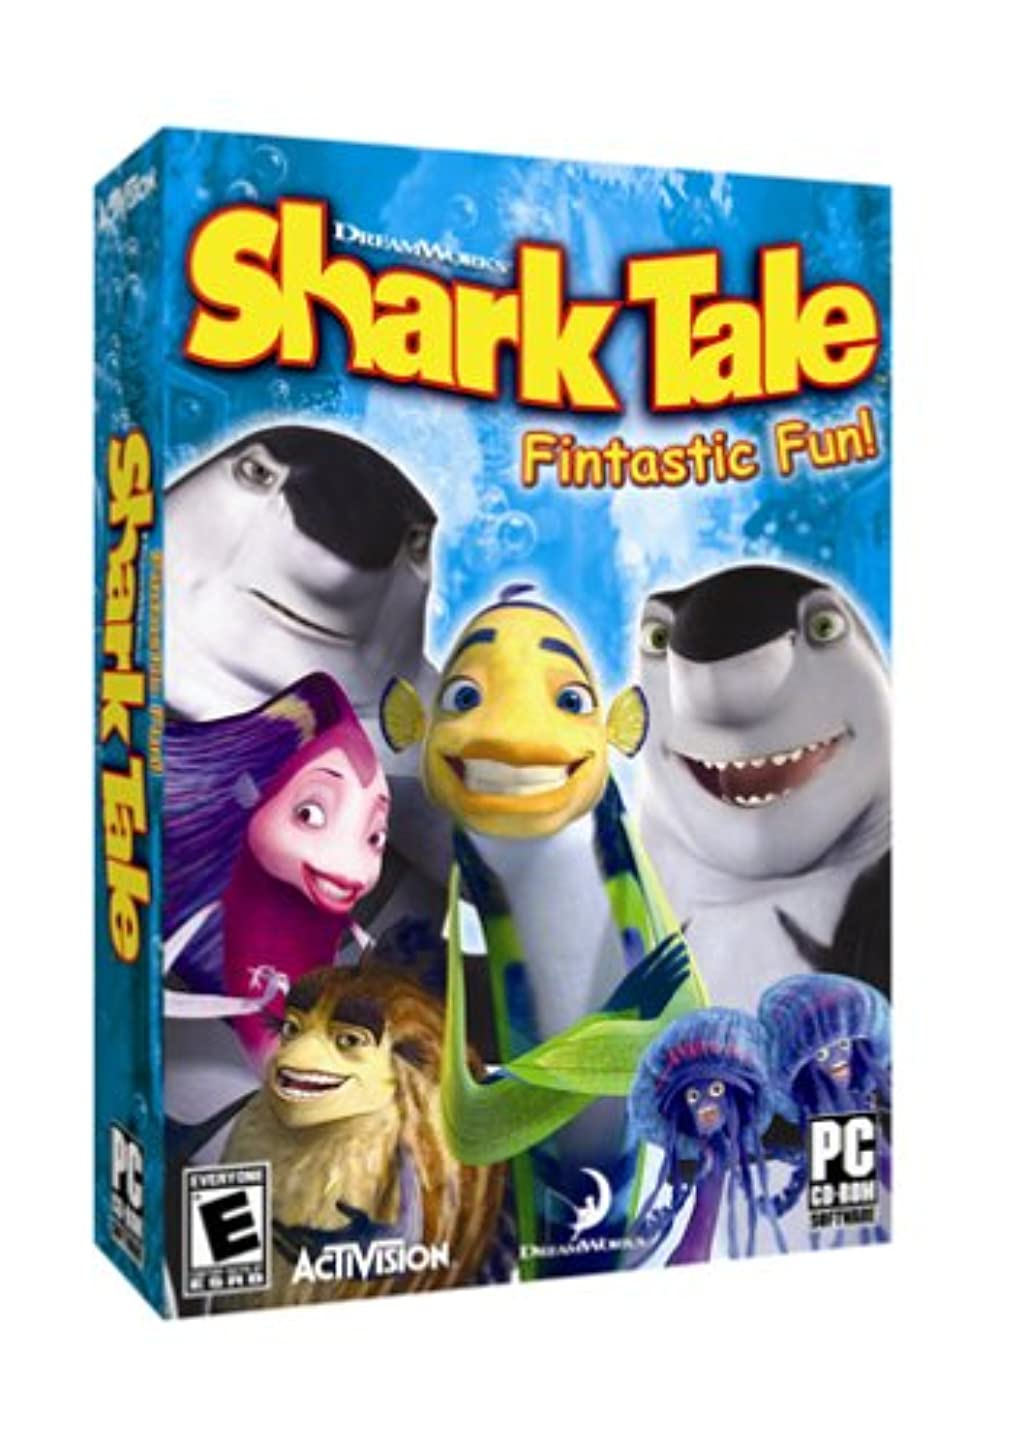 SHARK TALE ACTIVITY CENTER